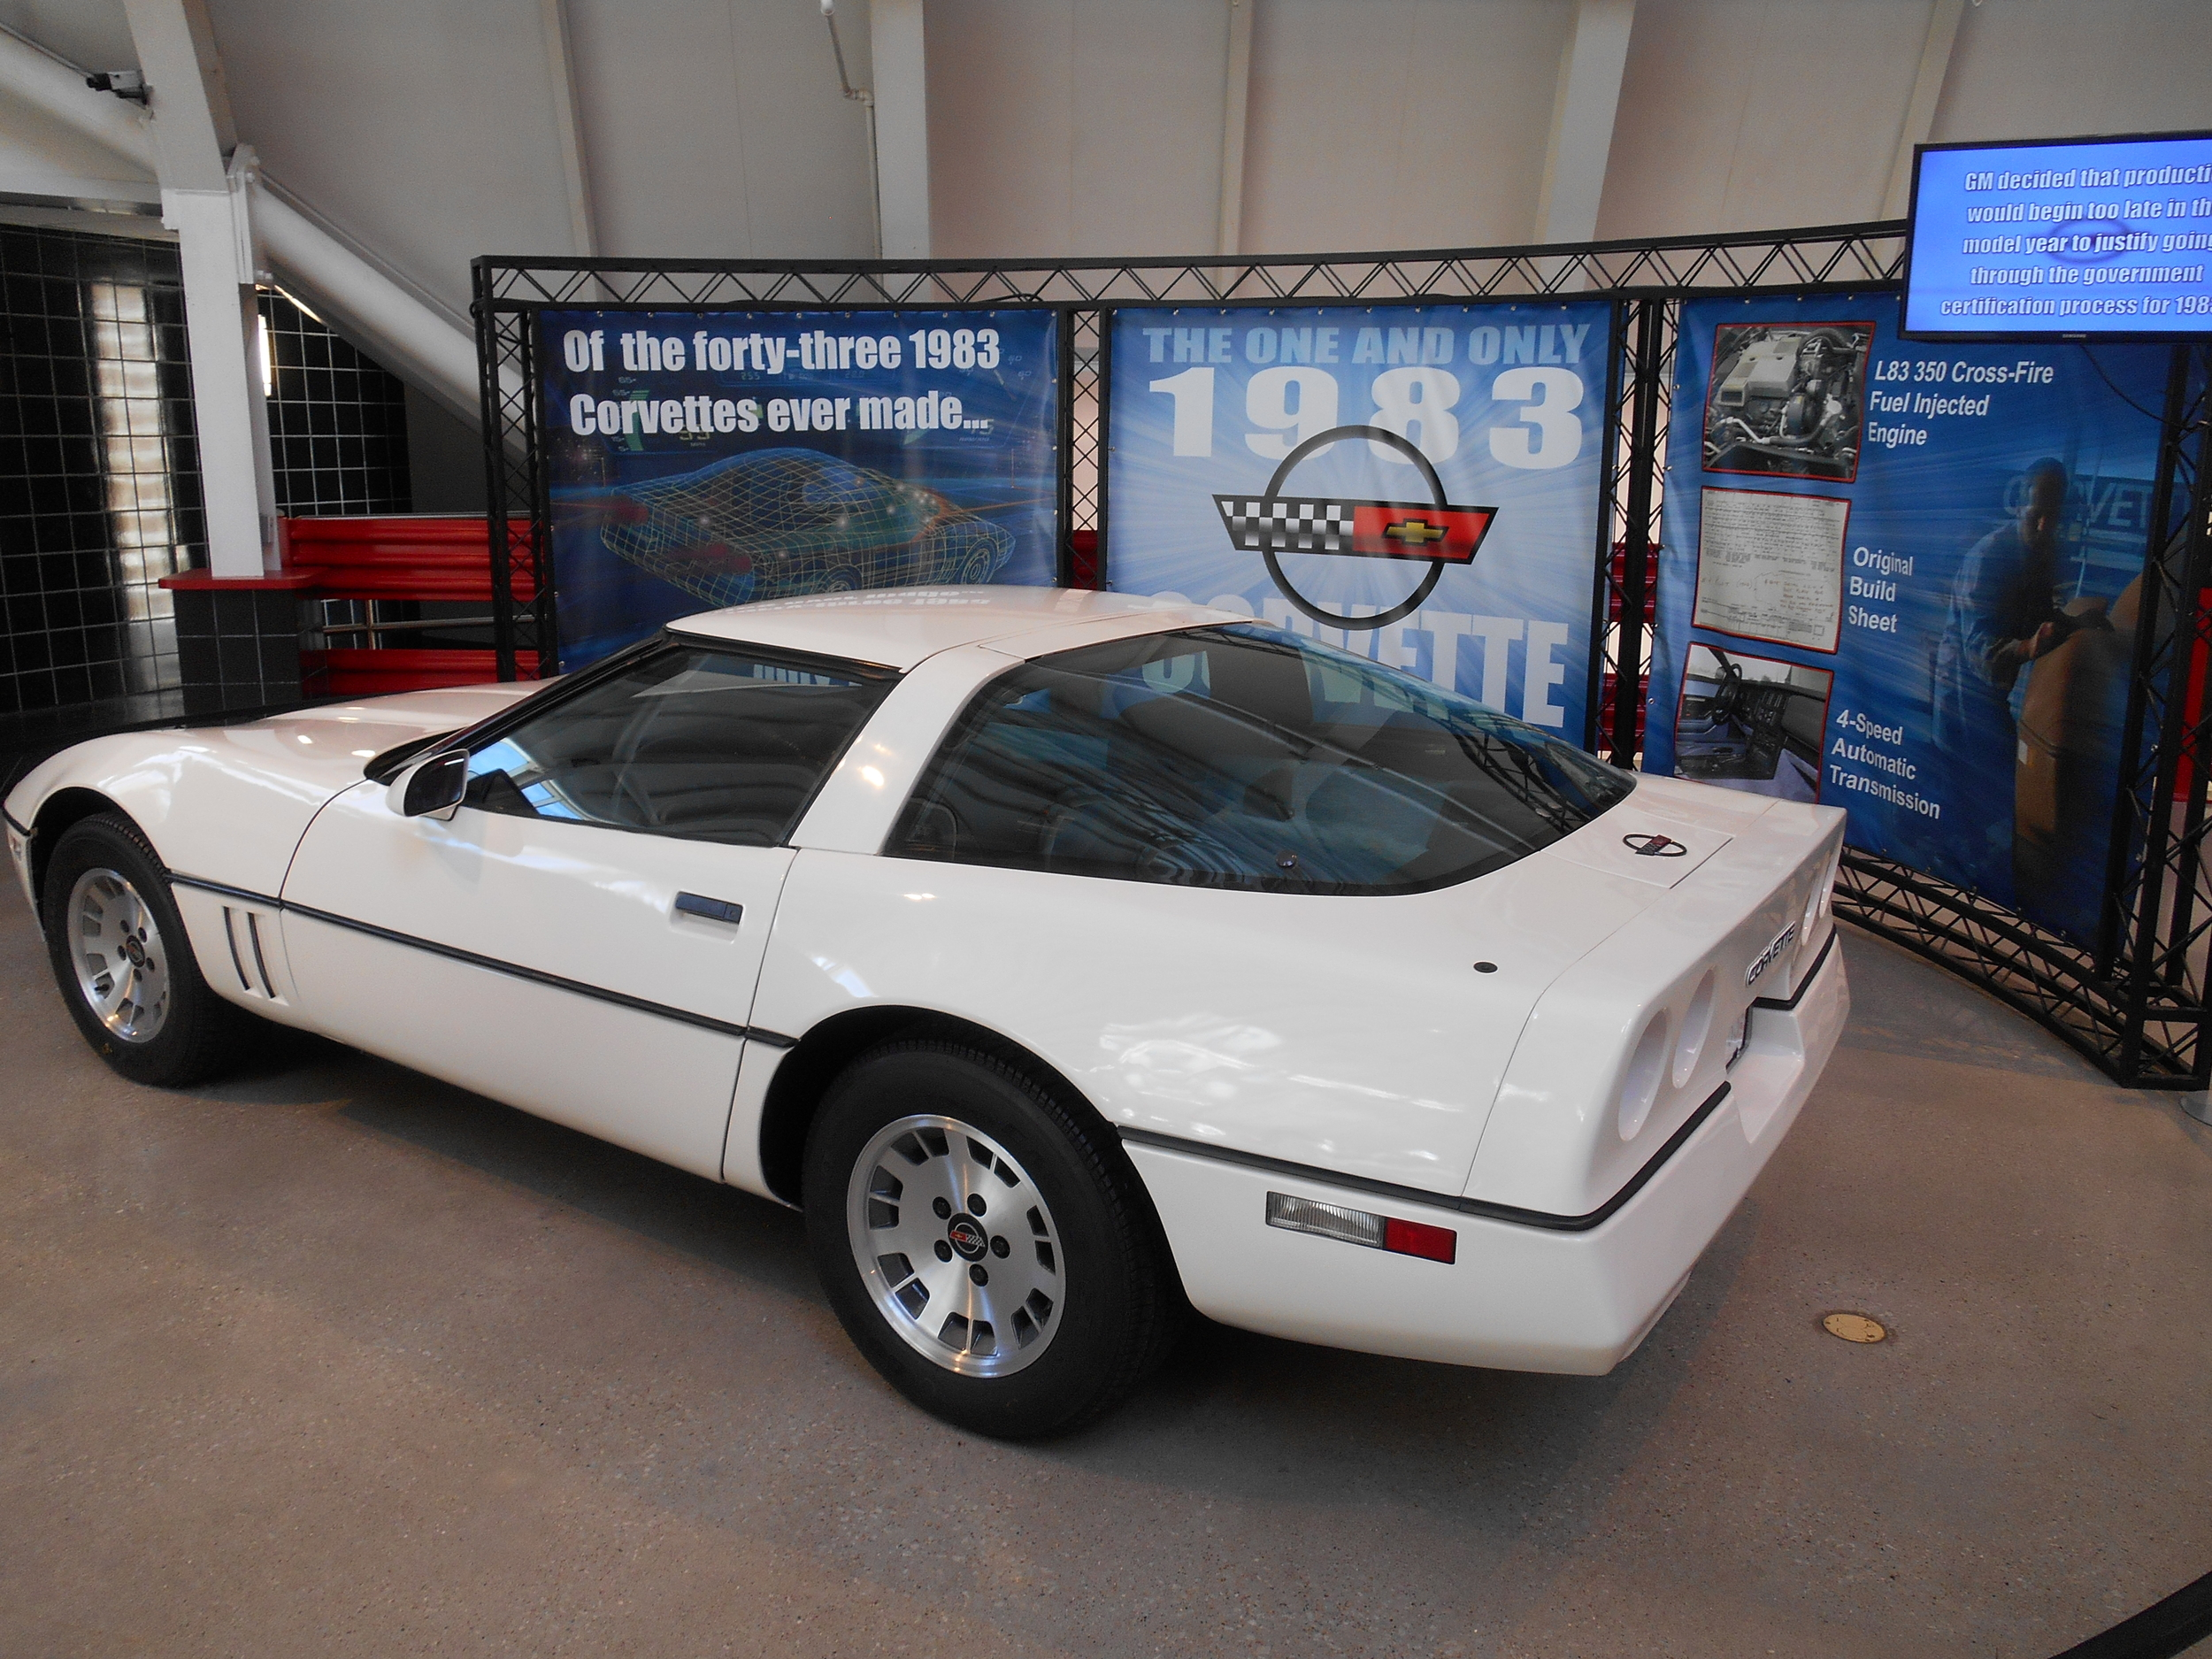 The only '83 Corvette in existence.